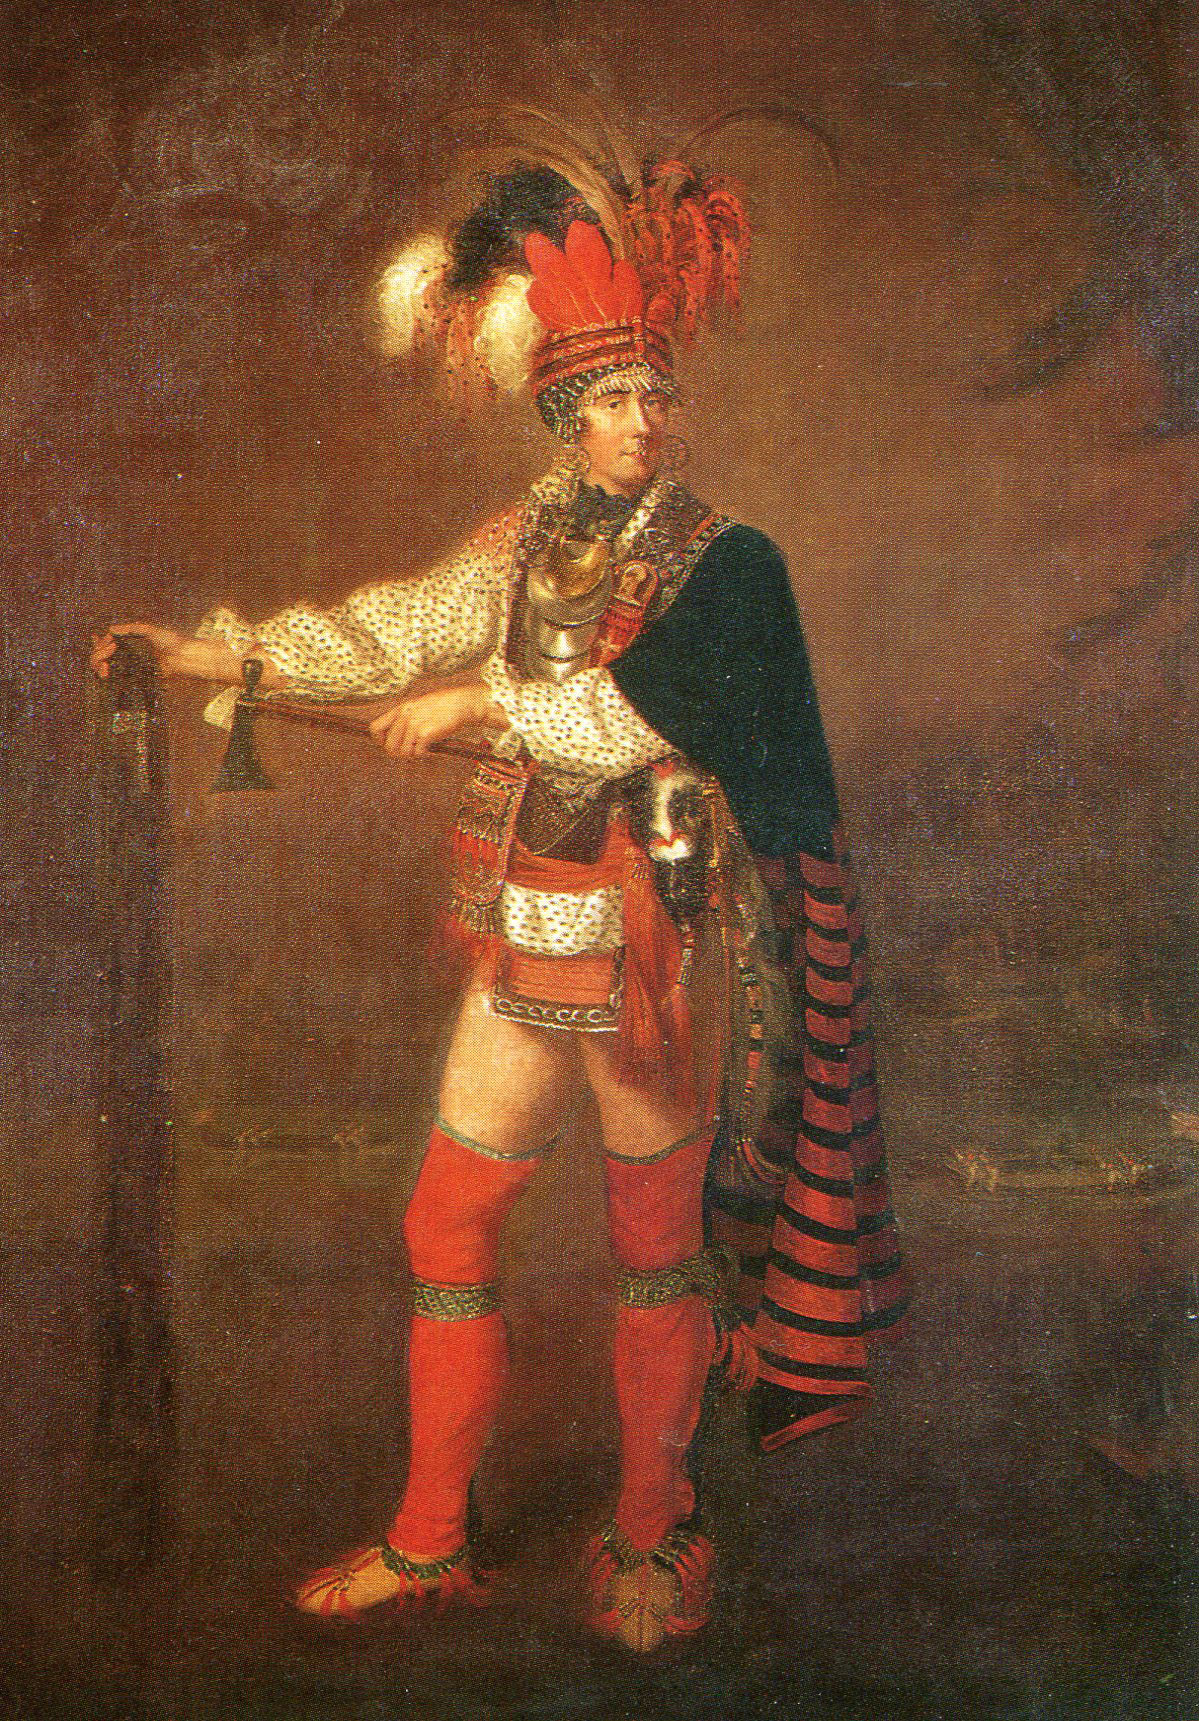 British officer as a Native American Chief: Battle of Freeman's Farm on 19th September 1777 in the American Revolutionary War